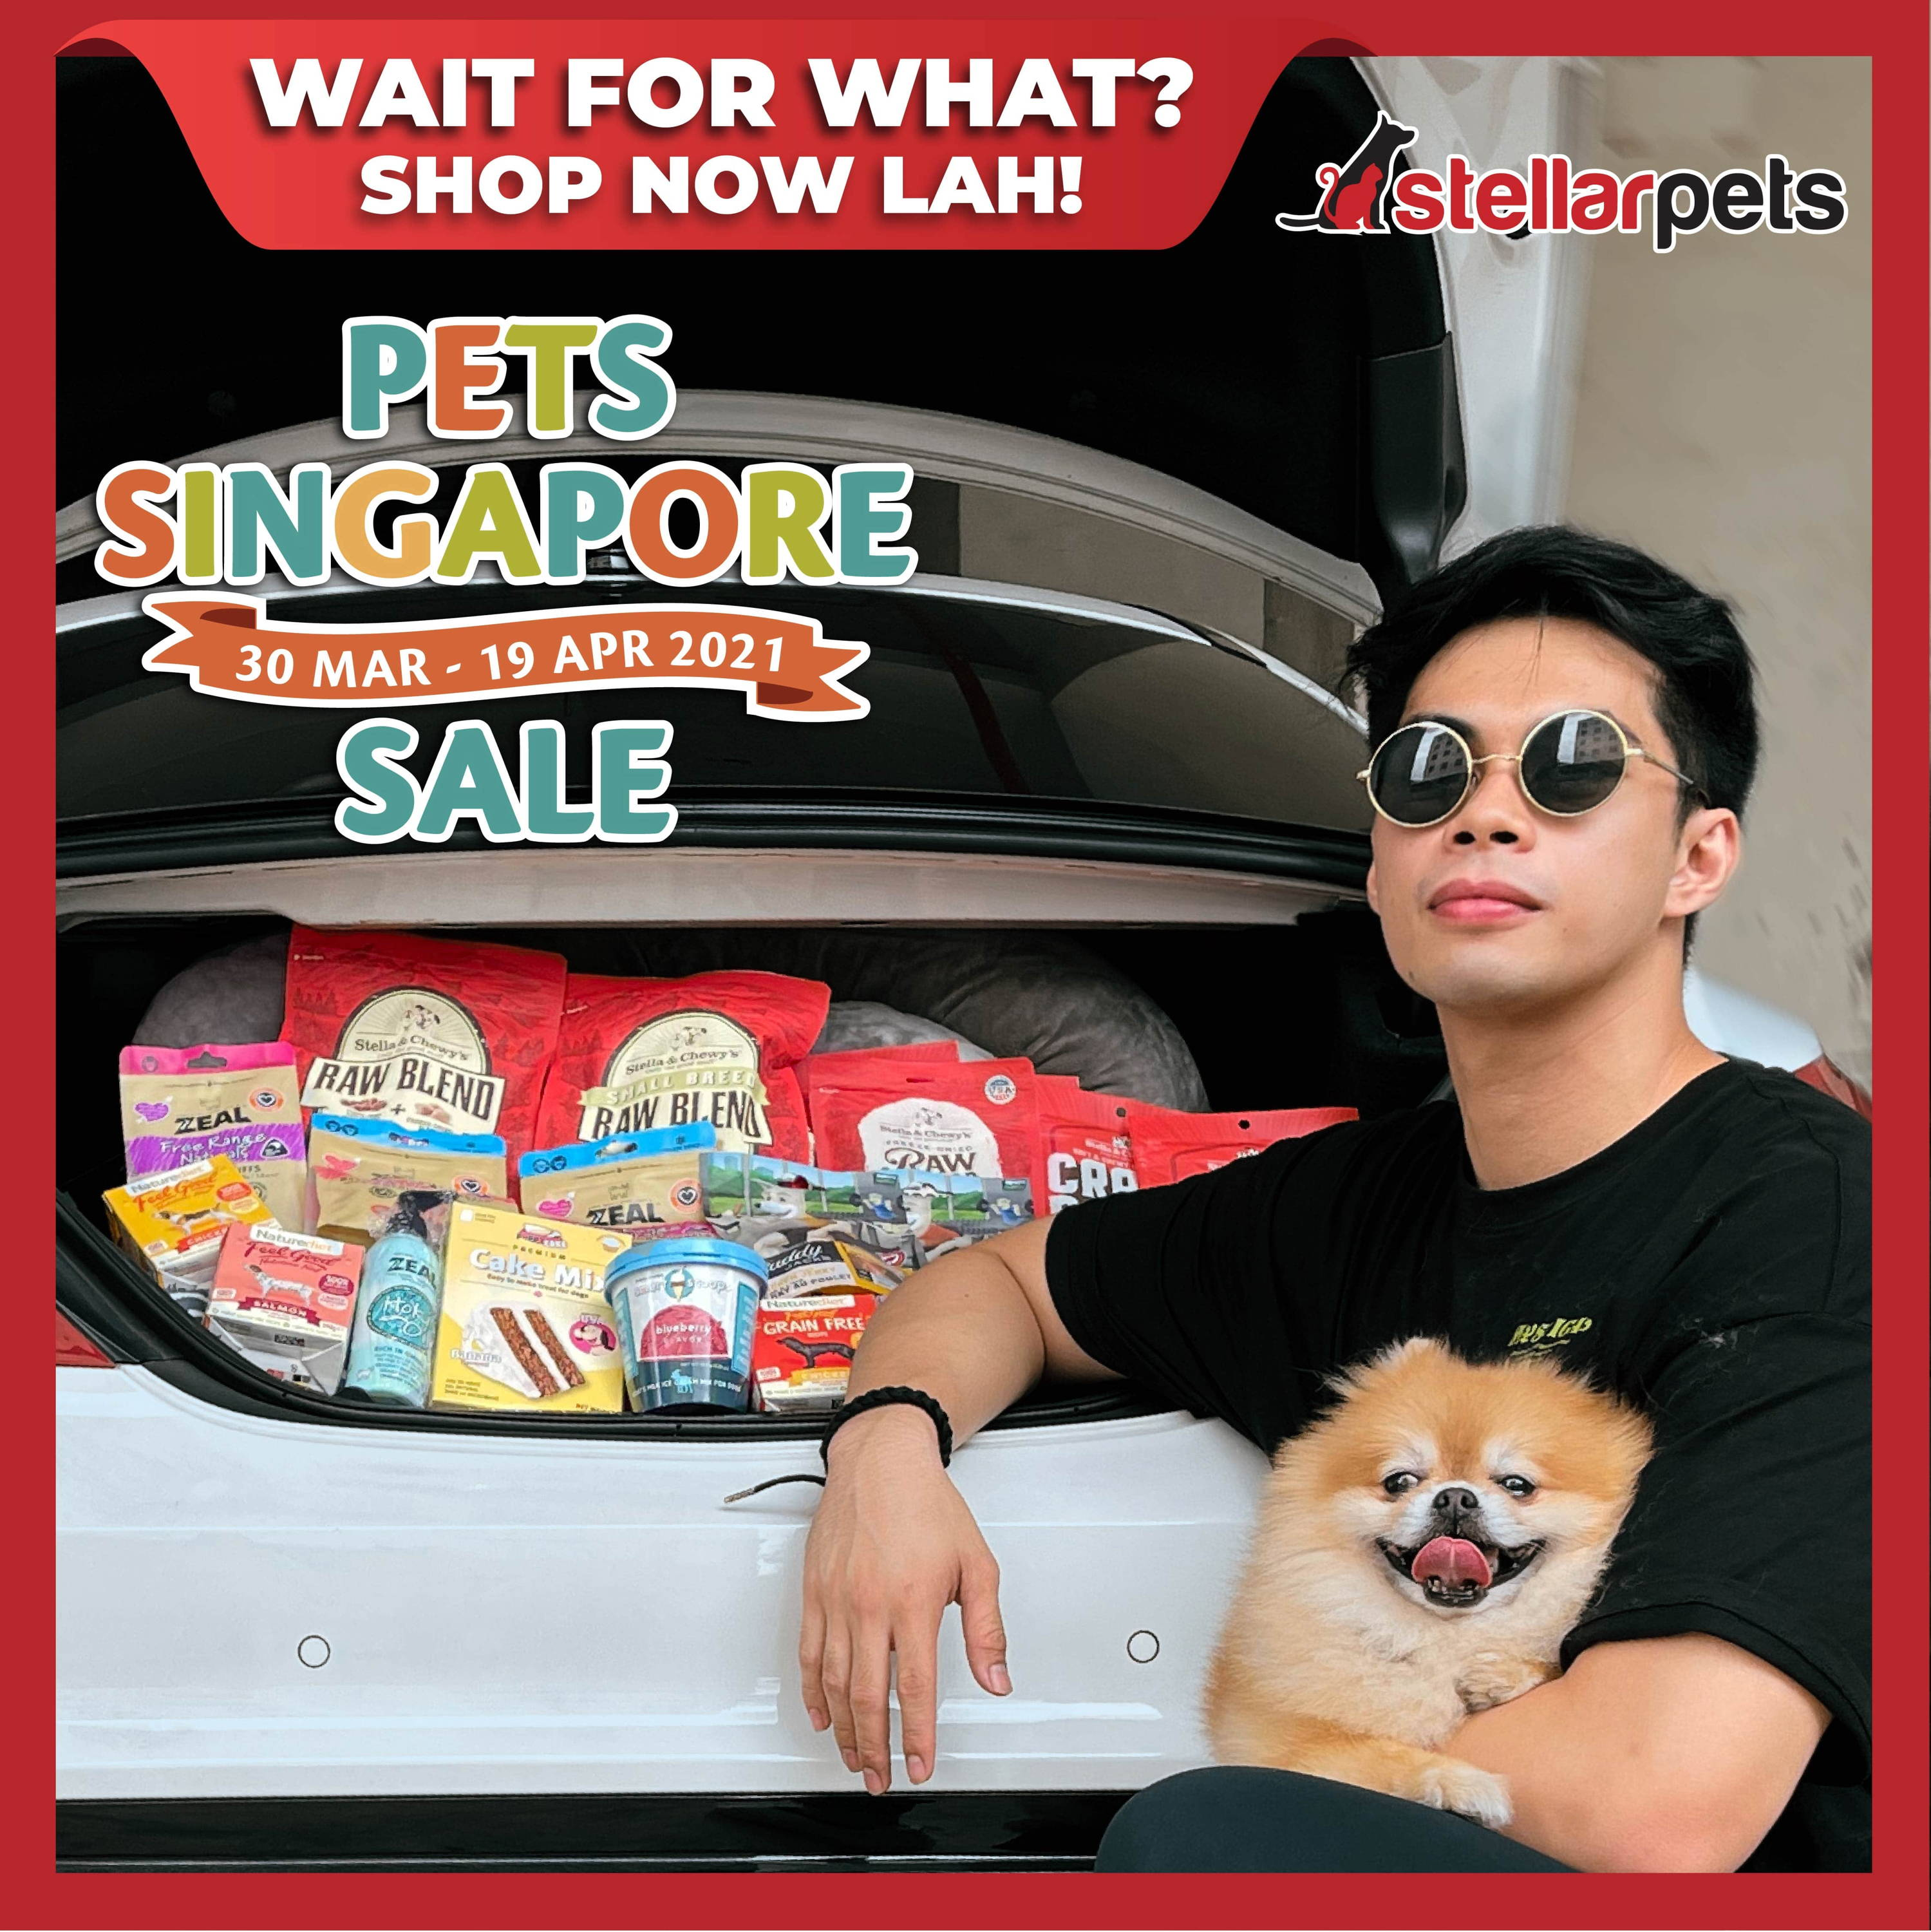 pet singapore sale by silversky and stellarpets from 30 mar to 19 apr at our online pet shop singapore pawpy kisses.-3